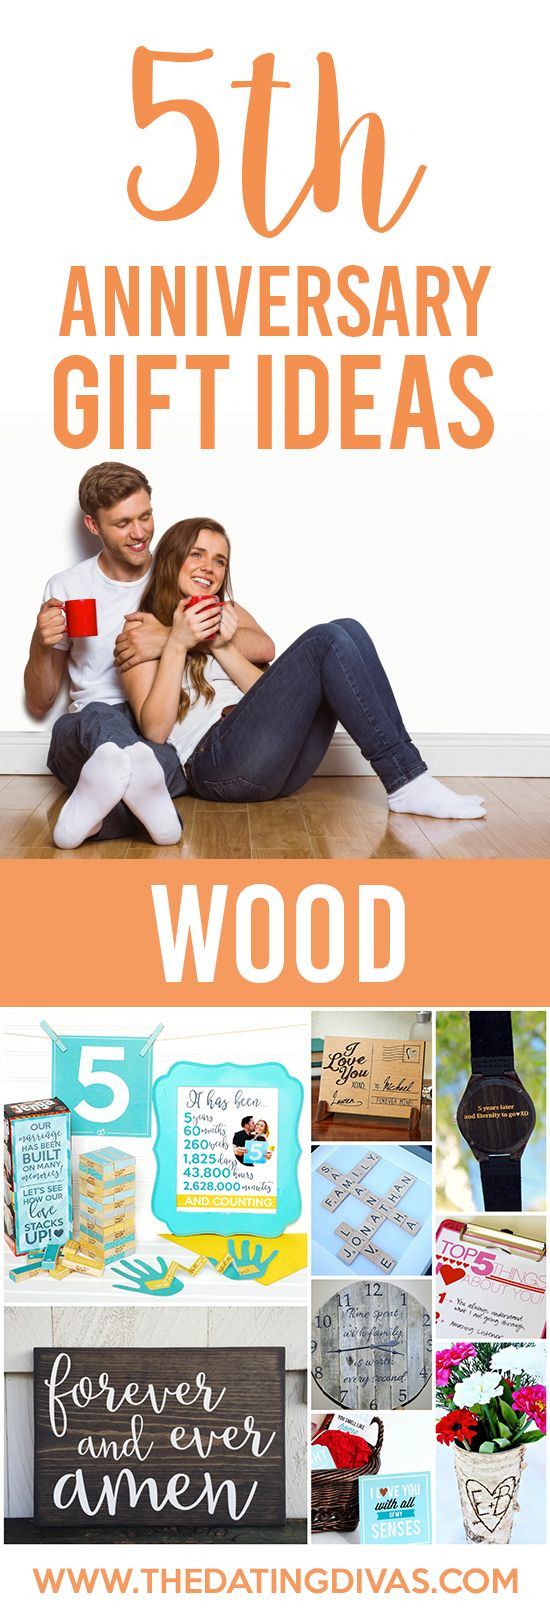 5th Anniversary Gift Ideas for your WOOD Anniversary!! Cute ideas!